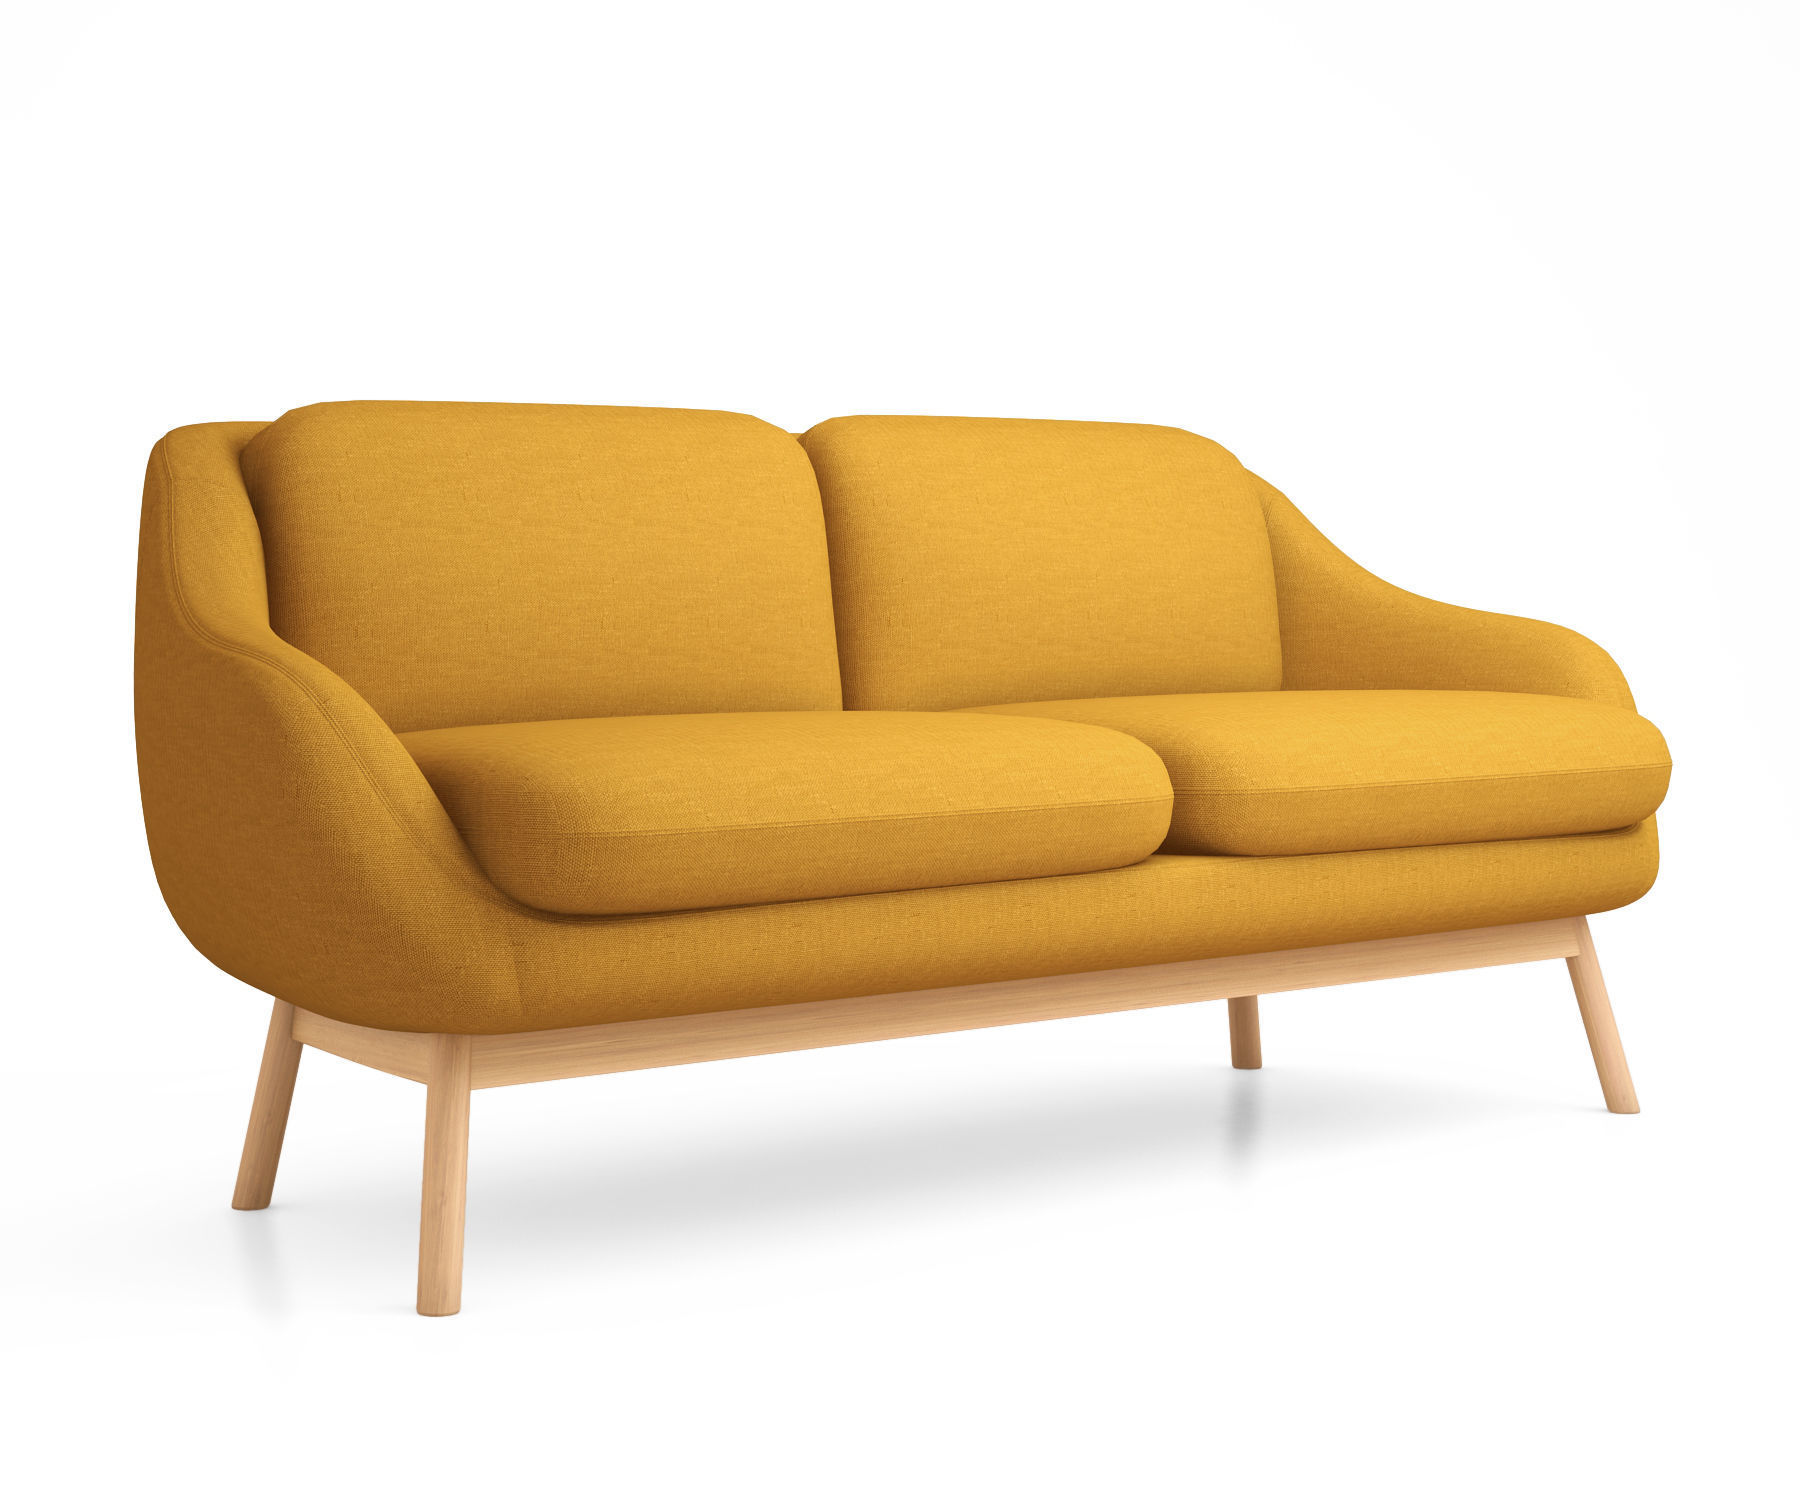 Oslo 2 seater sofa by Made